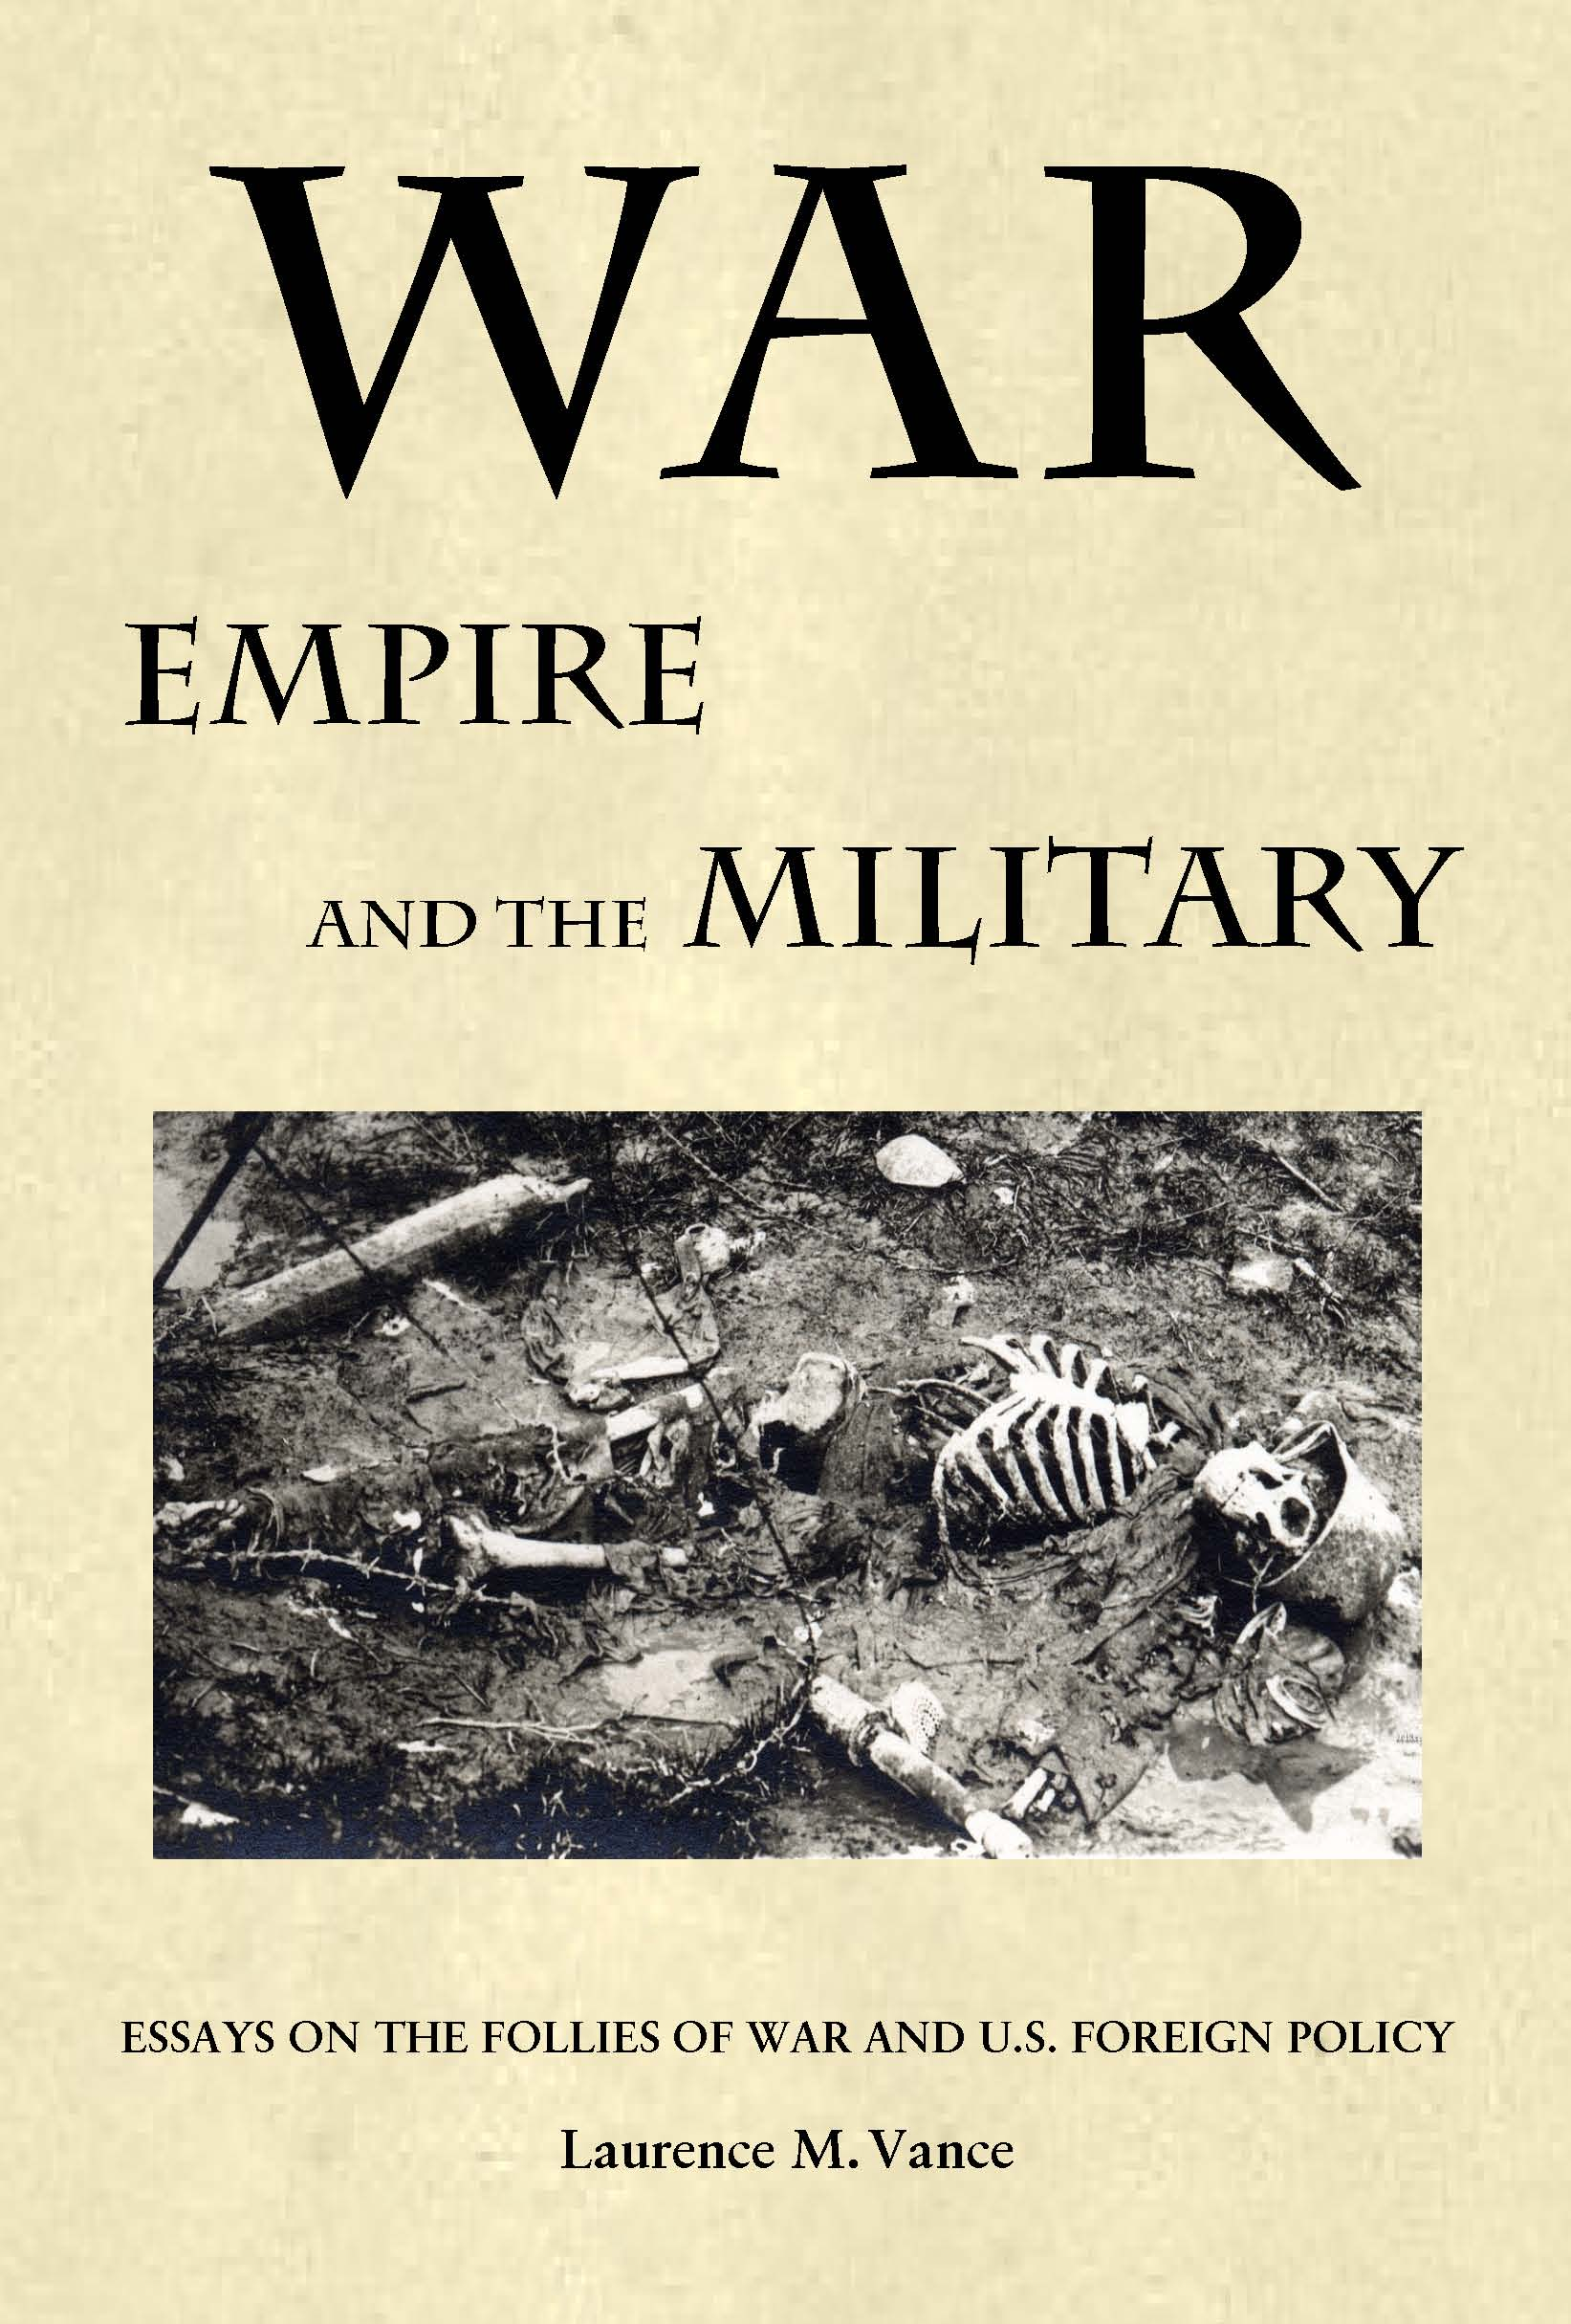 War, Empire, and the Military, 528 pages, paperback, $21.95